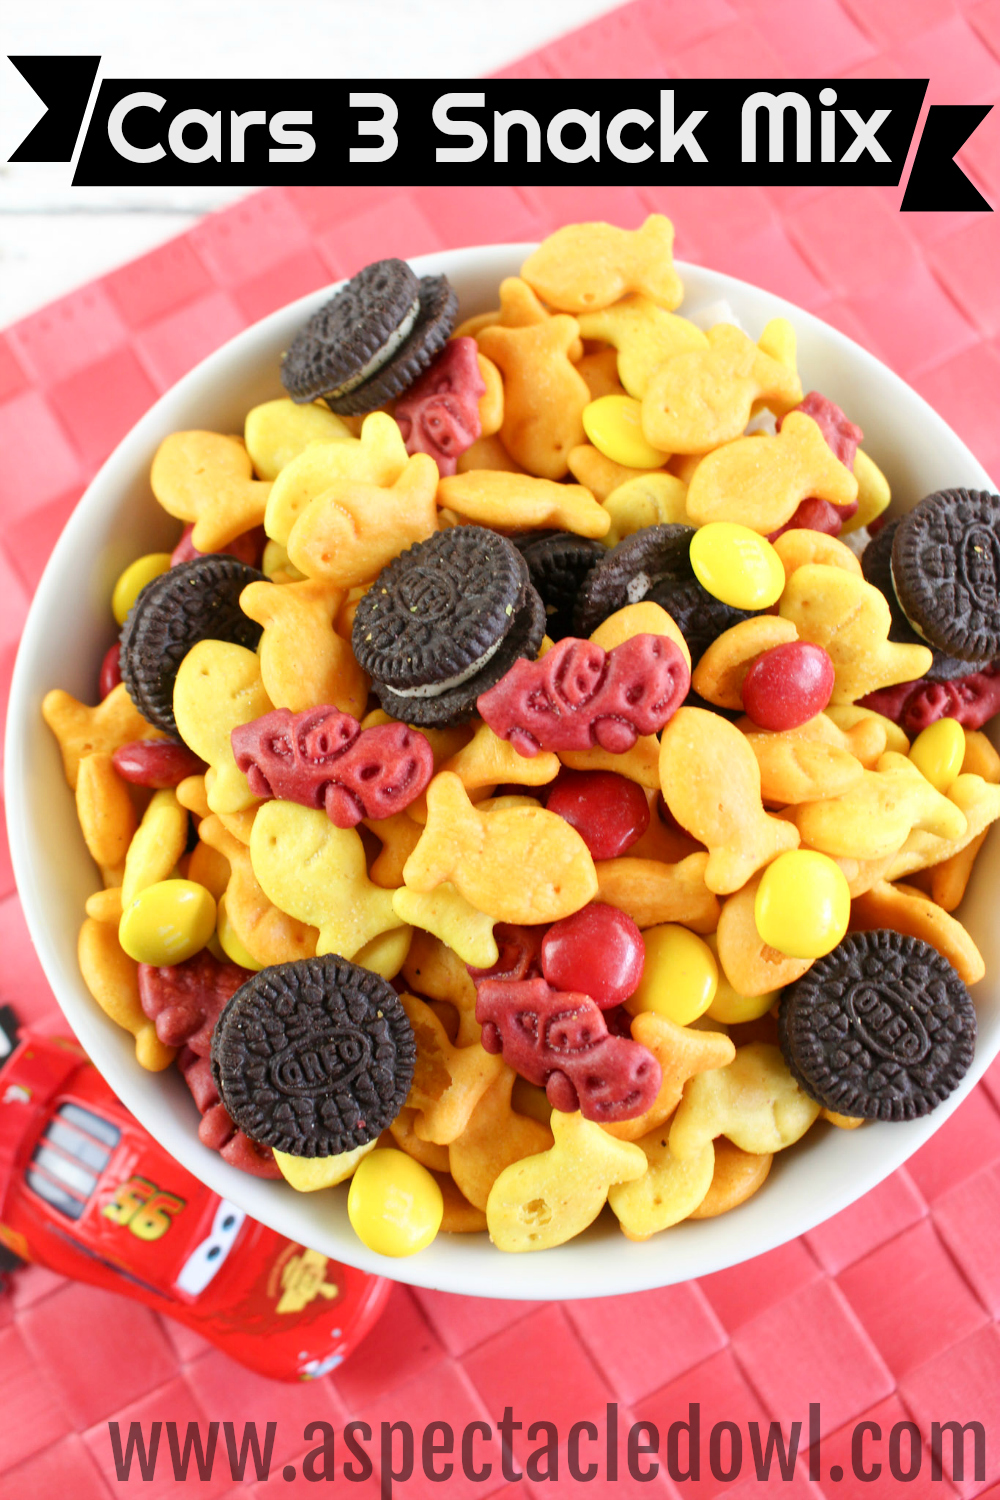 Cars 3 Snack Mix - A perfect snack to enjoy while you watch the movie!